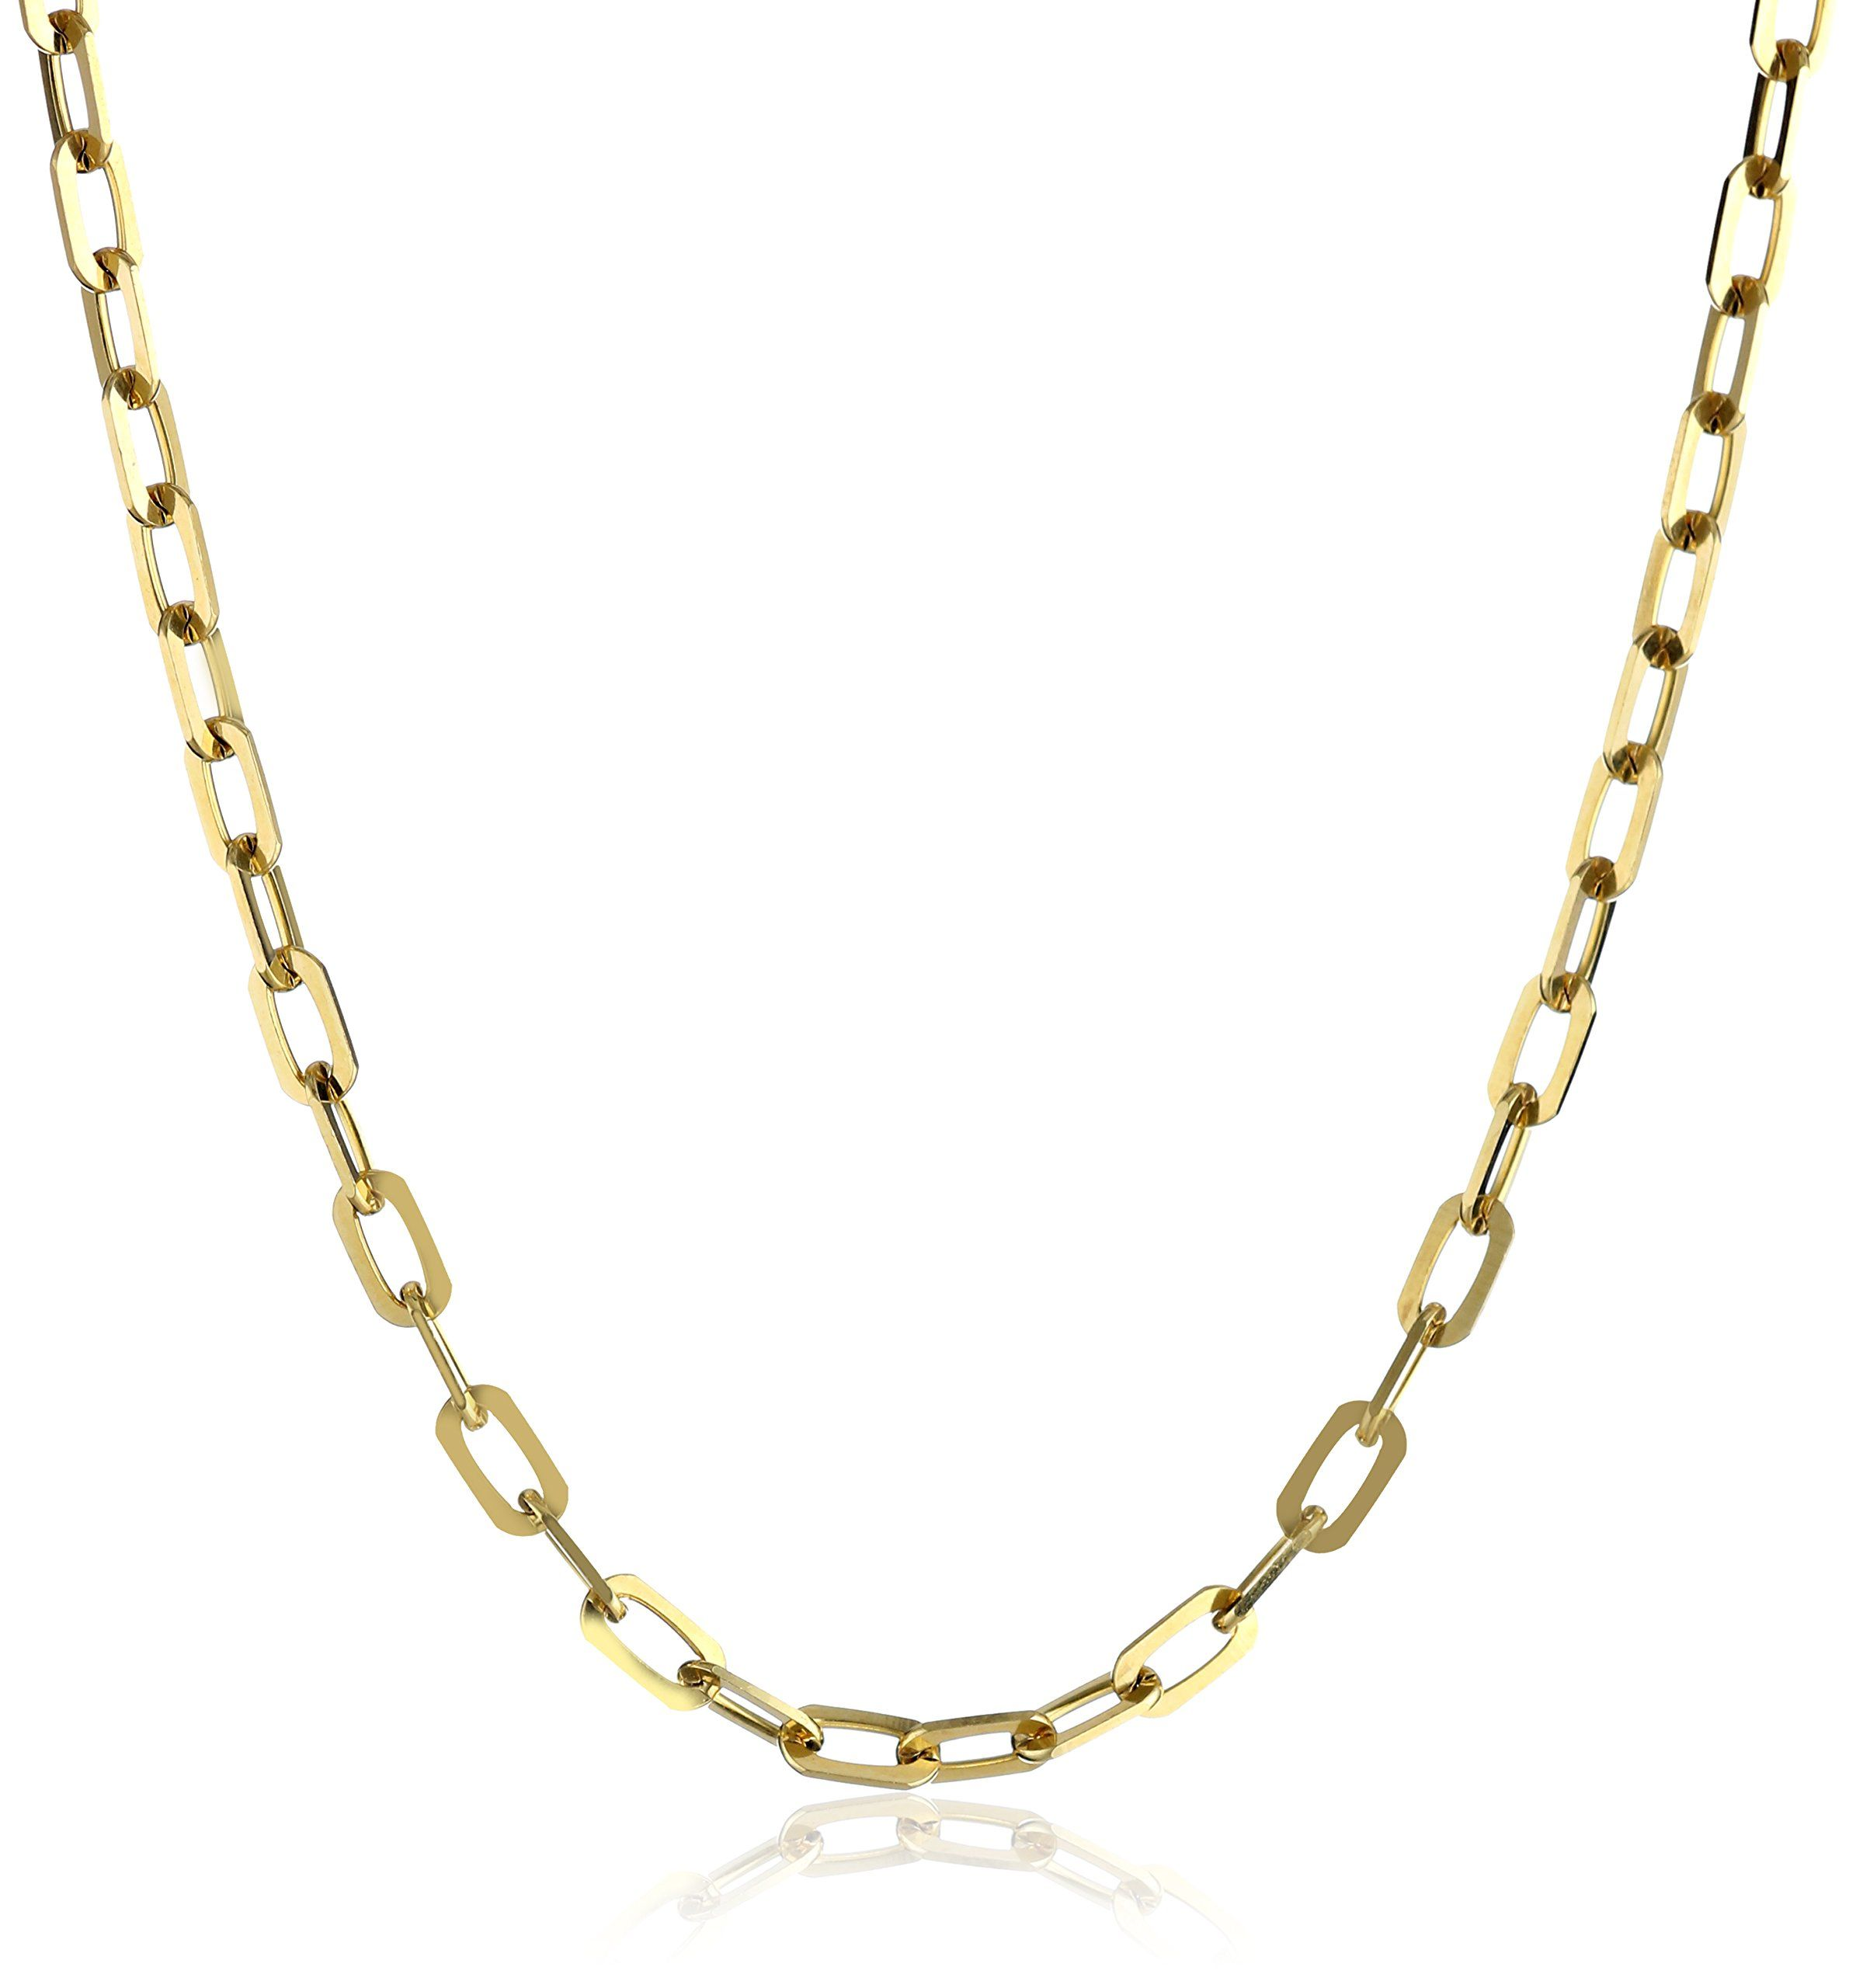 friends anchor chain gold necklace striped tone claire s pendant best necklaces